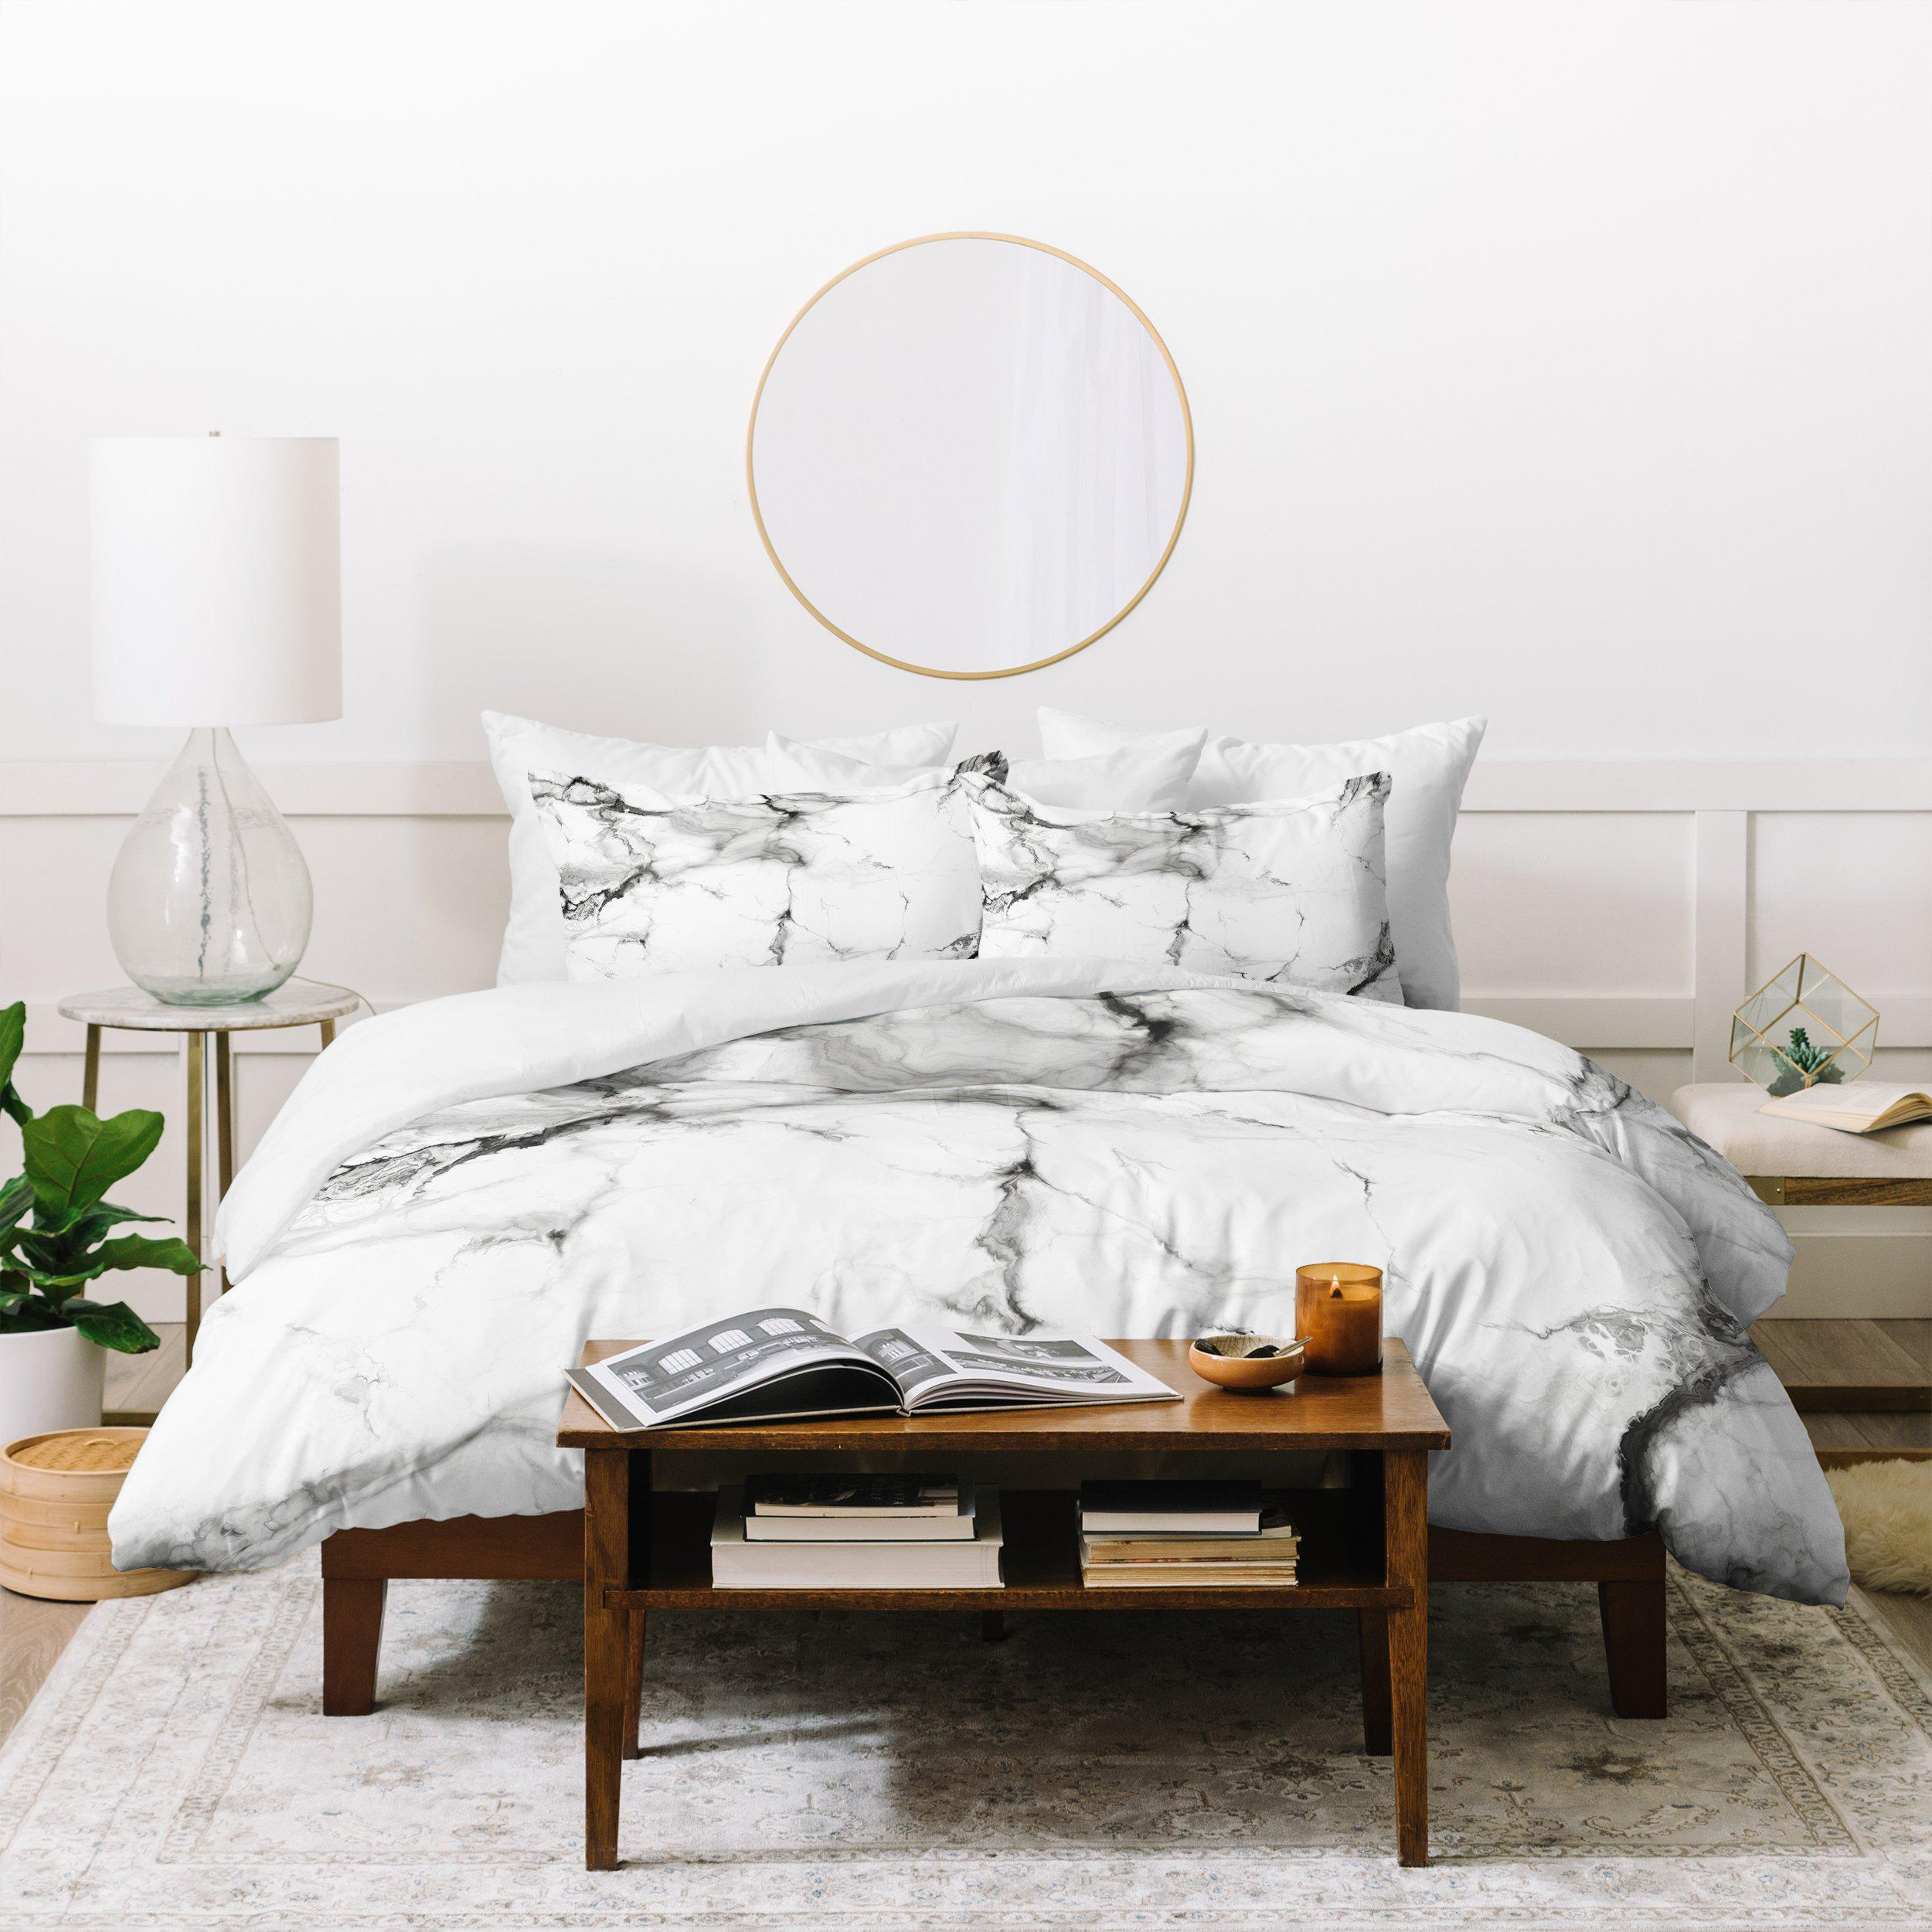 Image of Chelsea Victoria Marble Duvet Cover